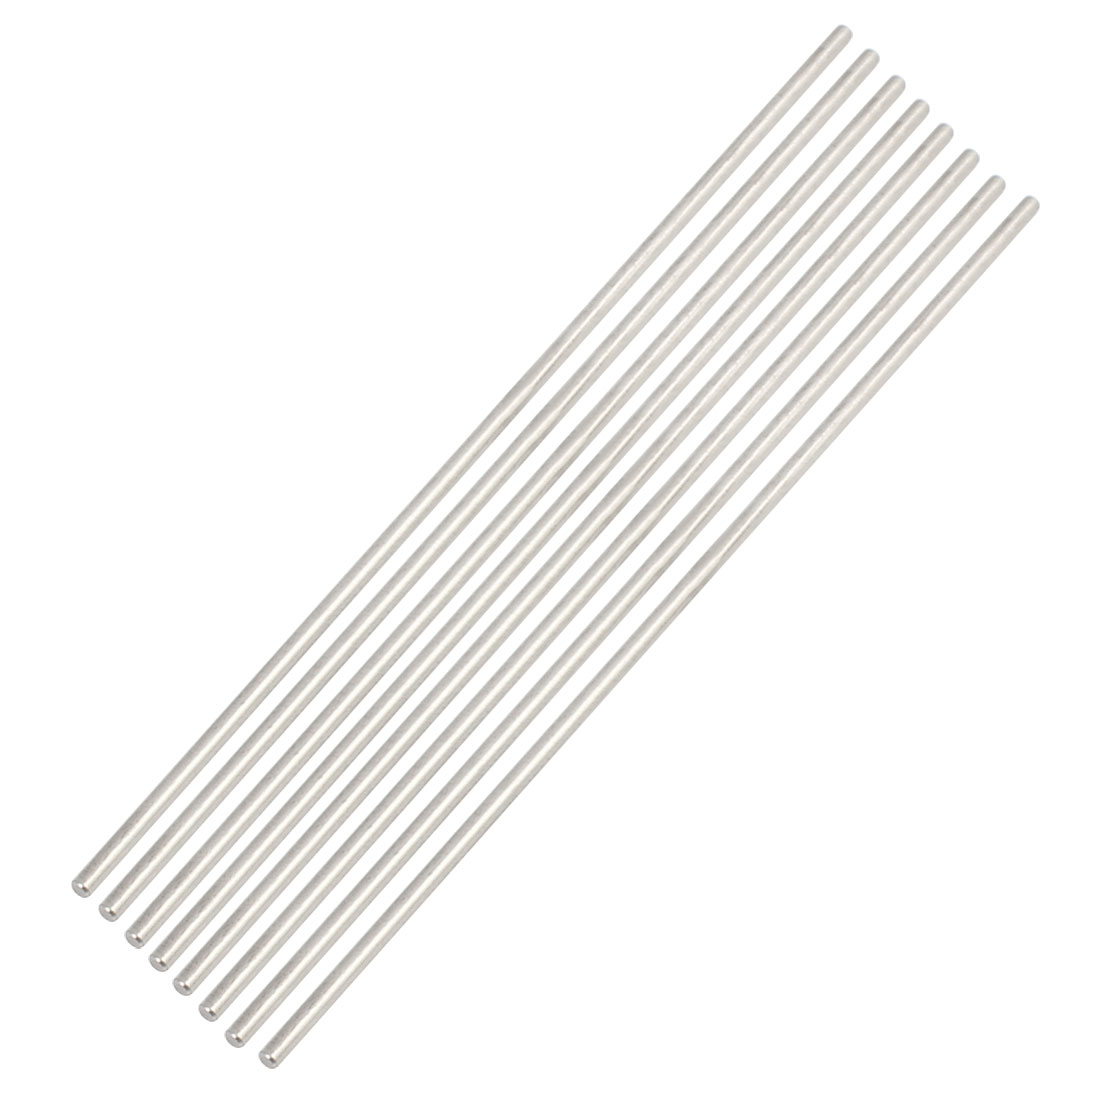 8pcs 2mm x 120mm DIY Stainless Steel Straight Round Rod Bar Silver Tone